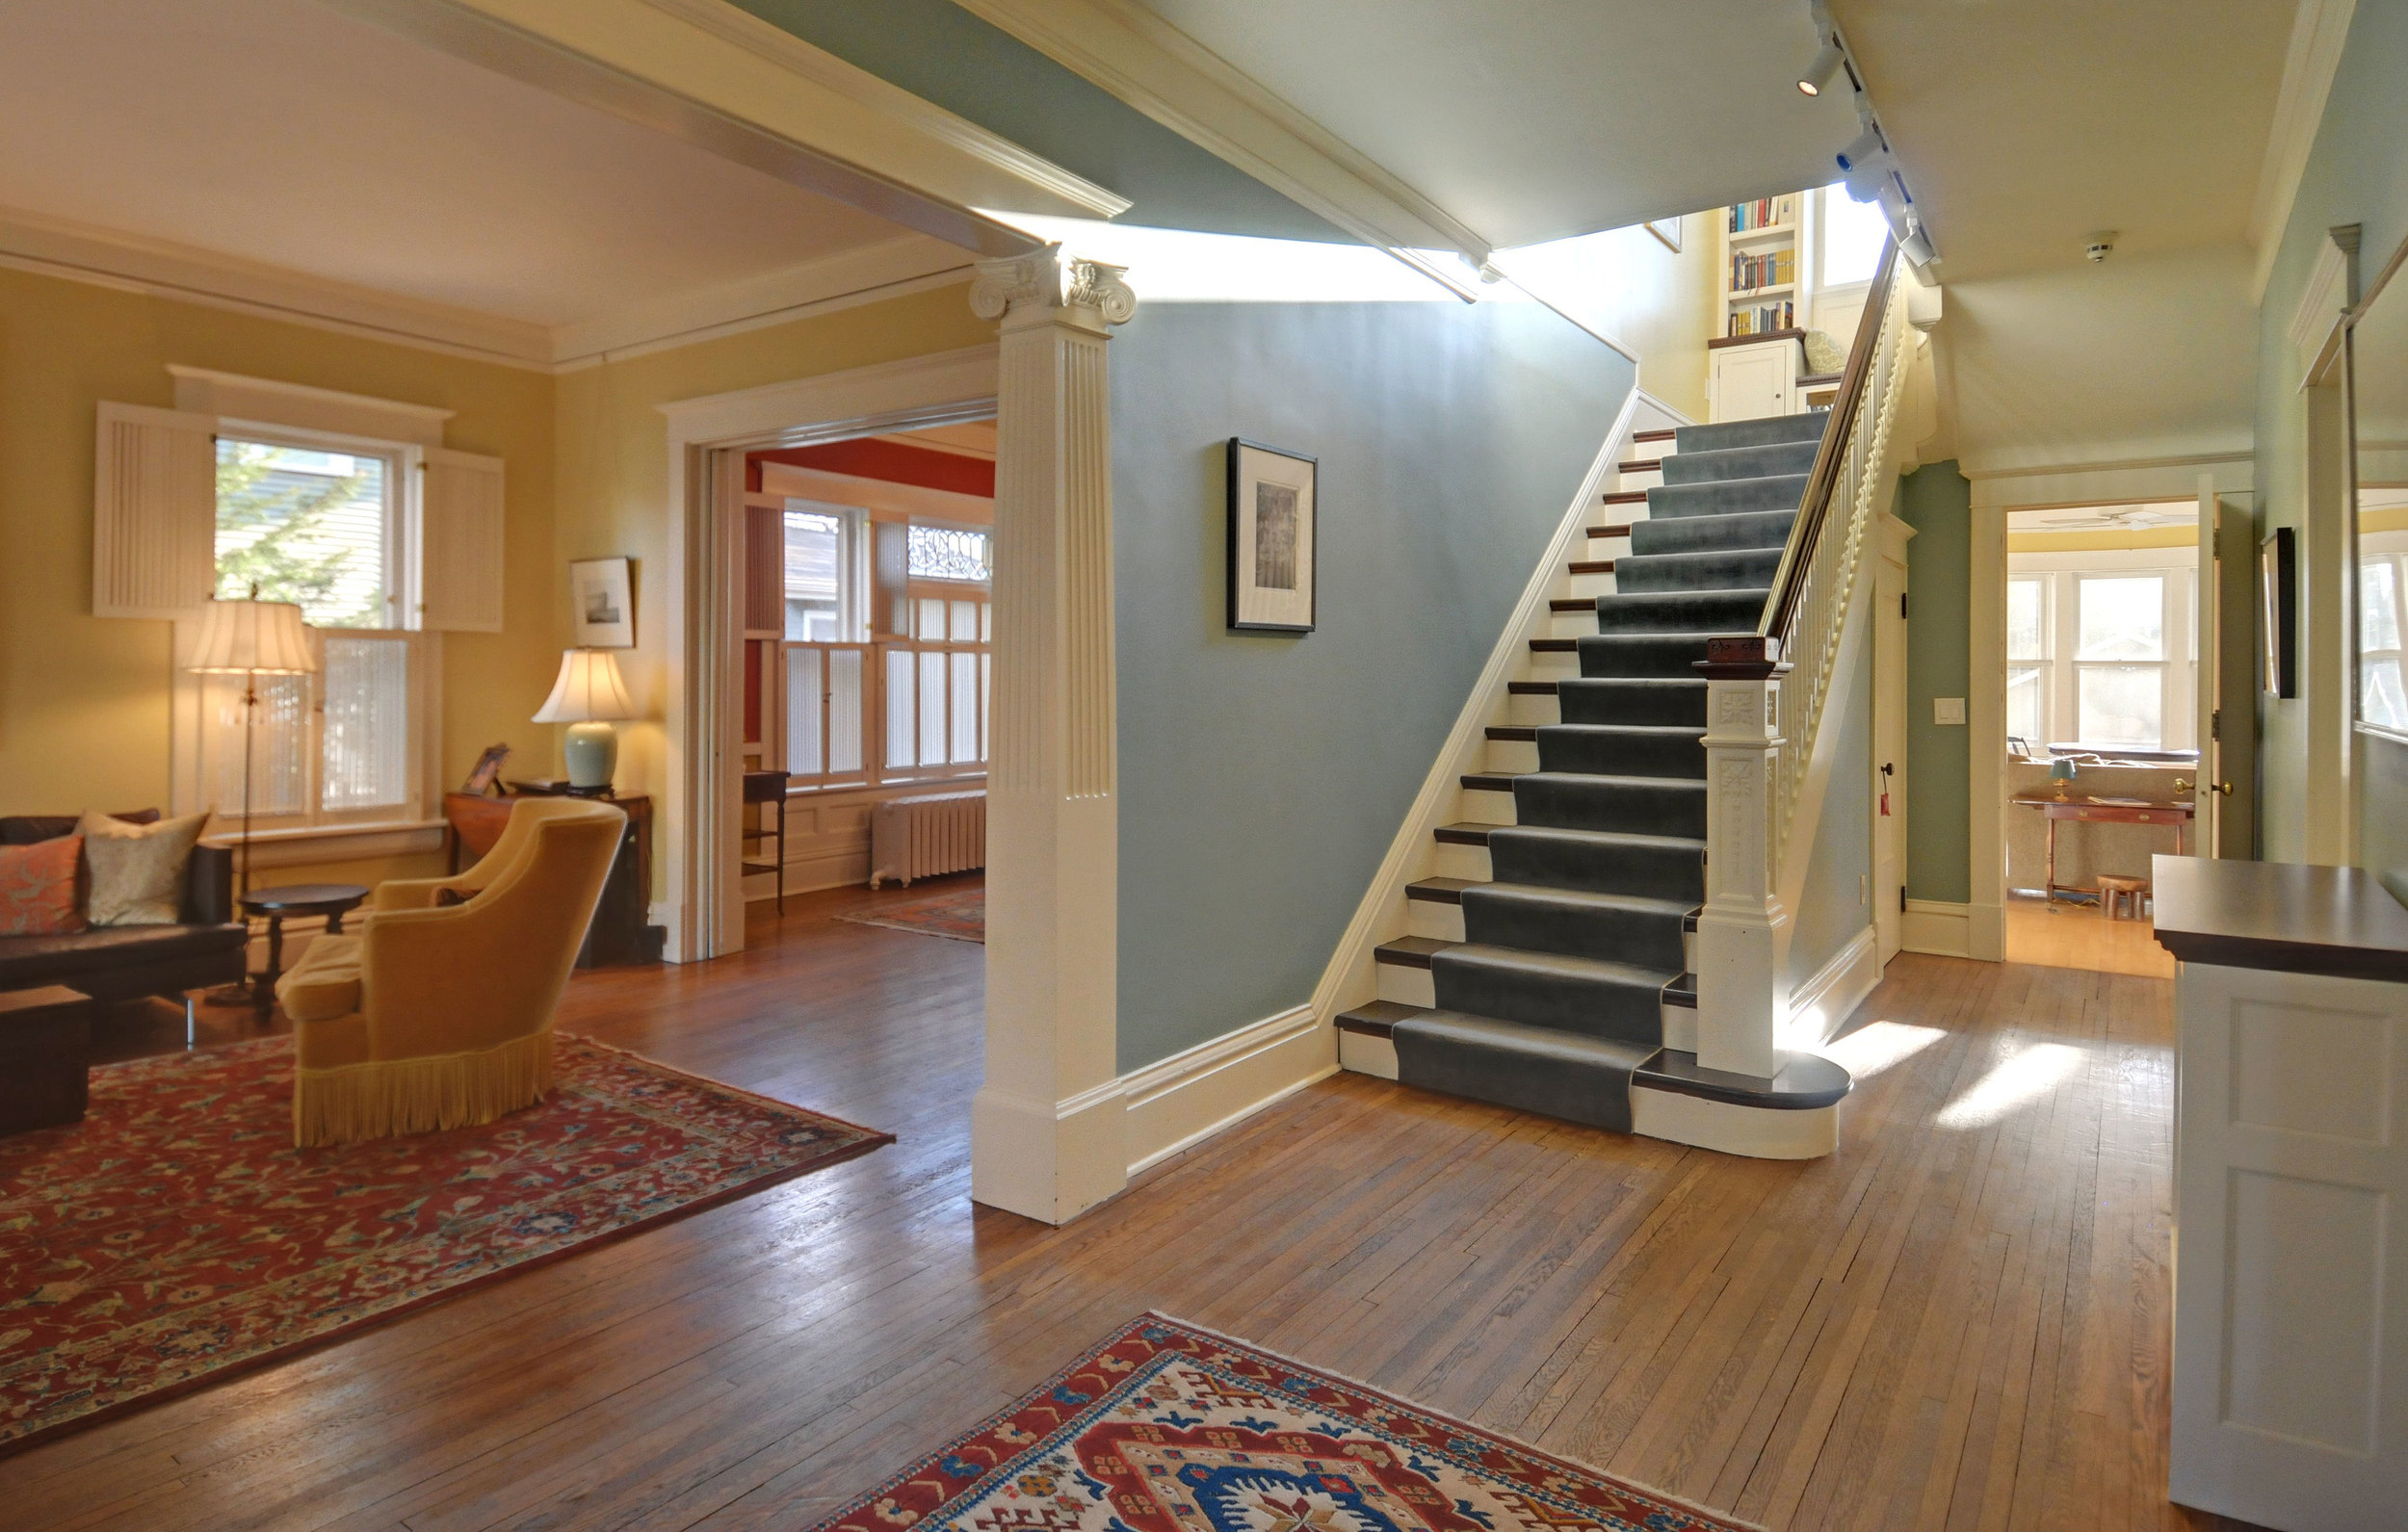 2424-foyer-entry-way-and-stairs.jpg